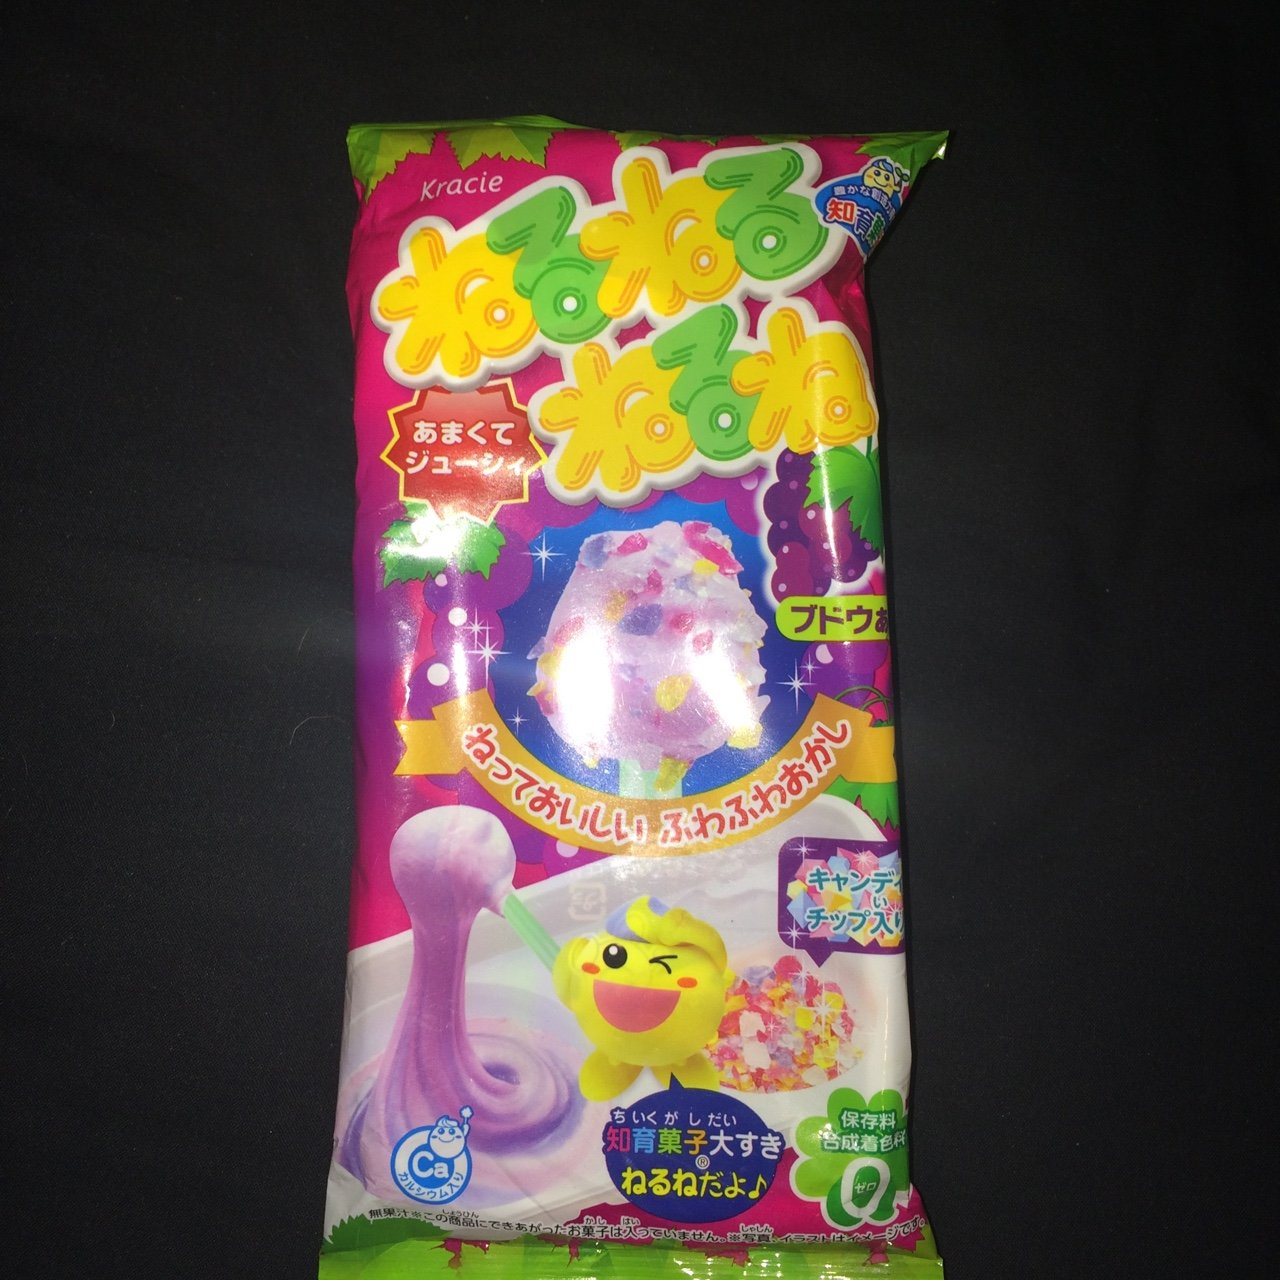 Japanese Diy Candy Kit By Kracie Very Fun And Yummy 0 Cute Depop